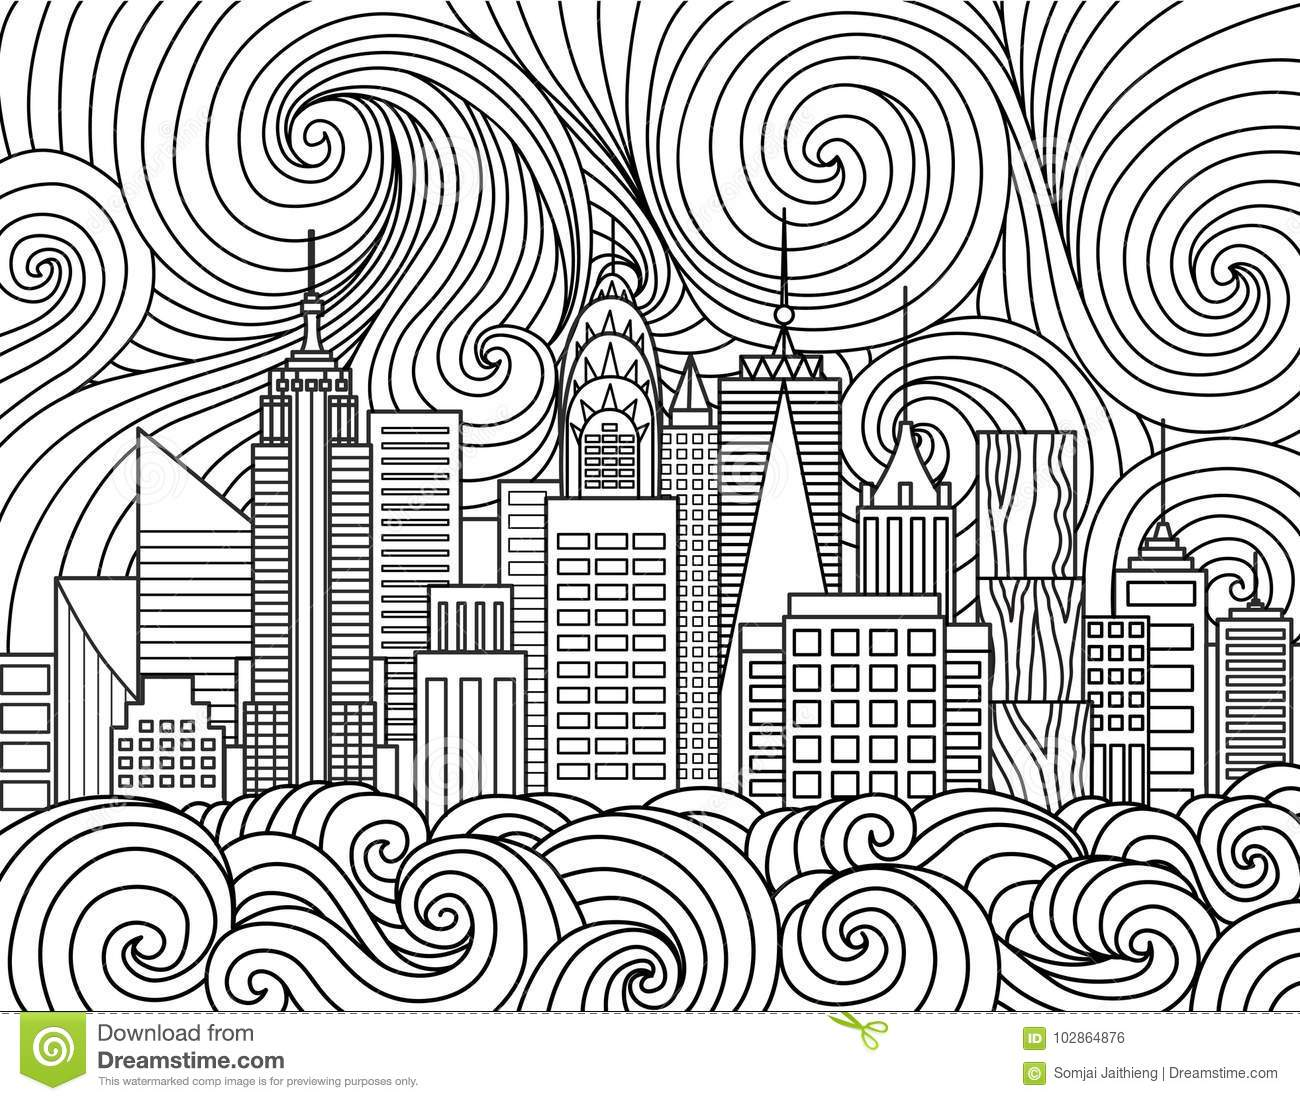 Line Art Design Of New York City Skyline For Element And Adult Coloring Book PageVector Illustration